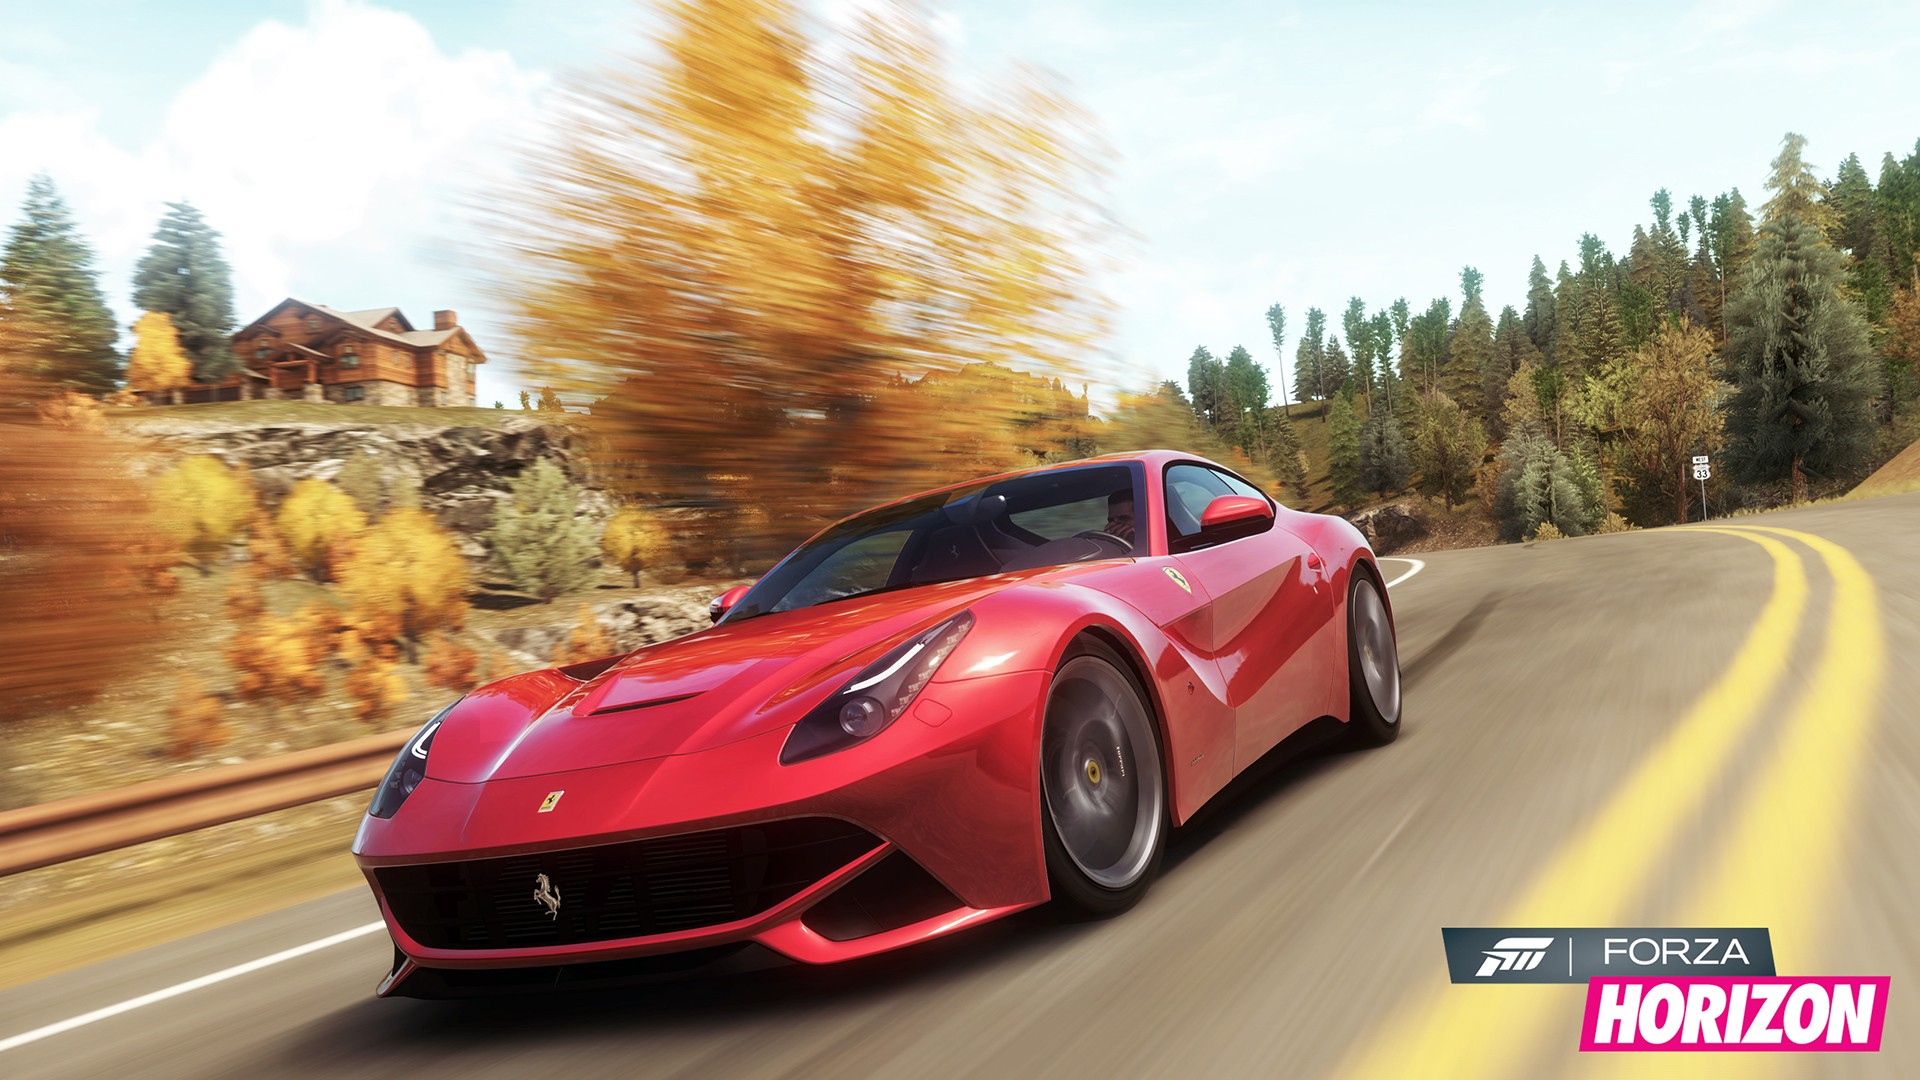 Forza Horizon Wallpapers Pictures Images